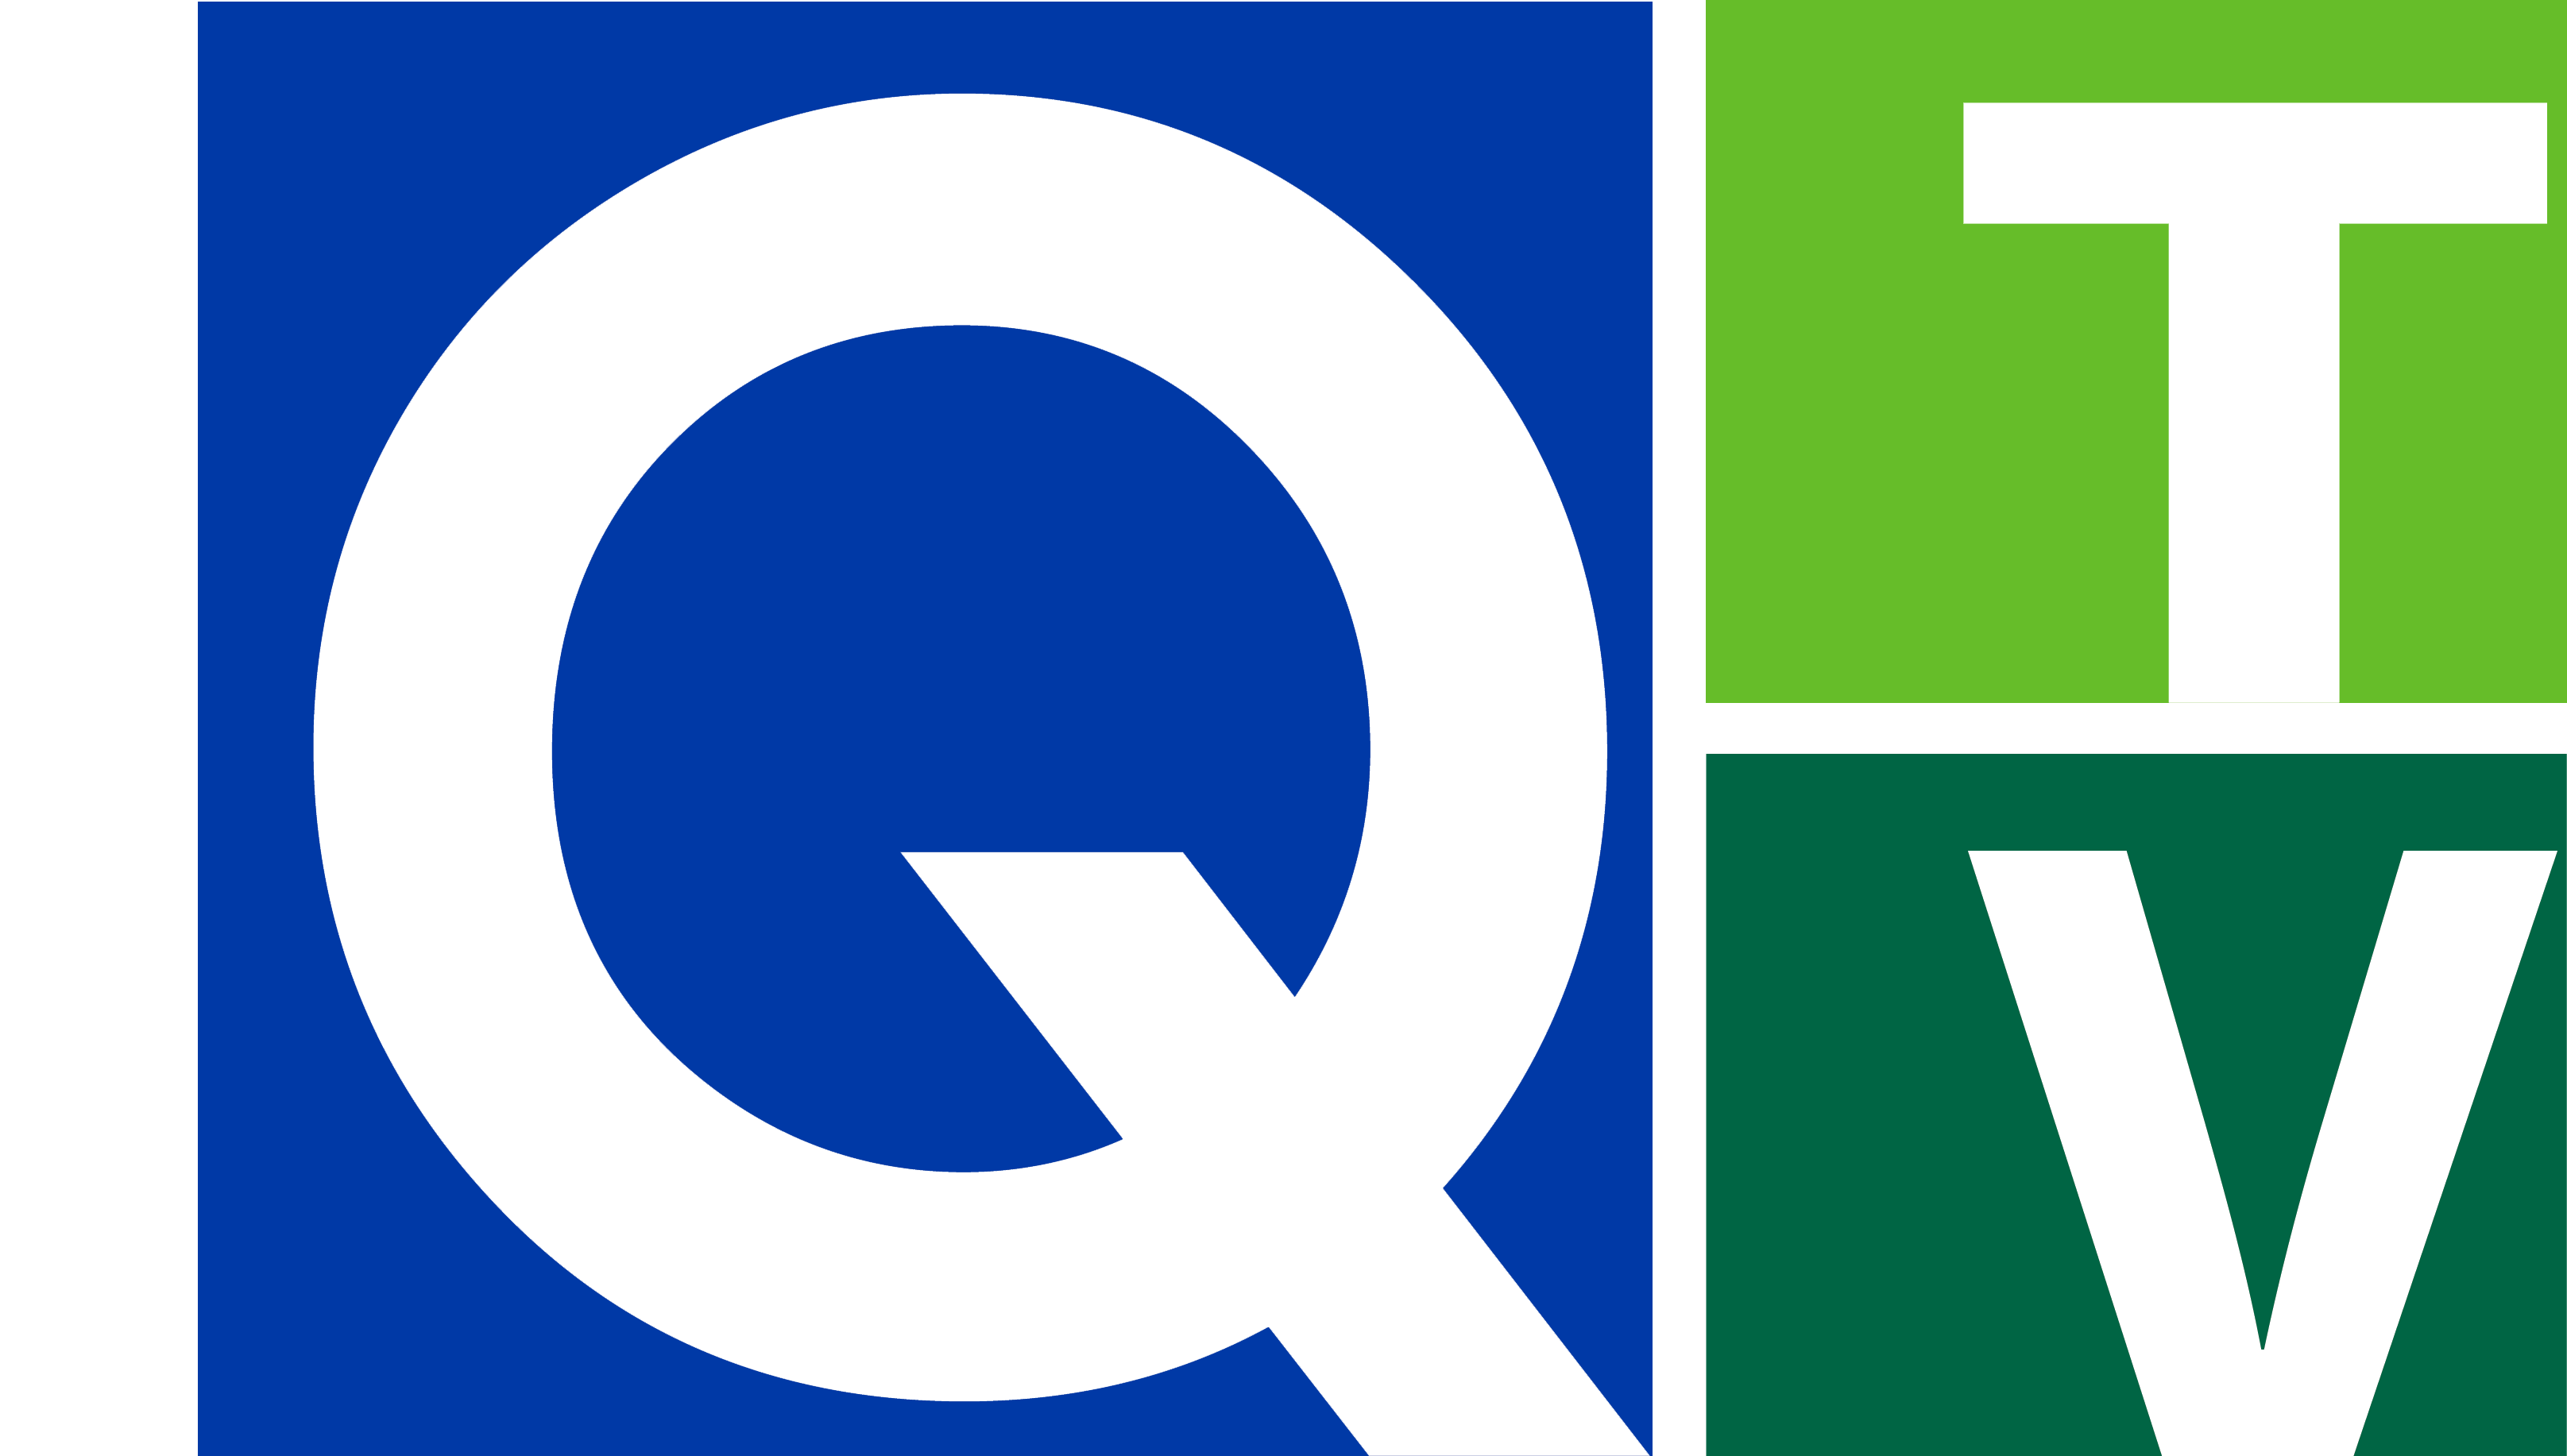 Q-TV Logo with Delta College Name in White